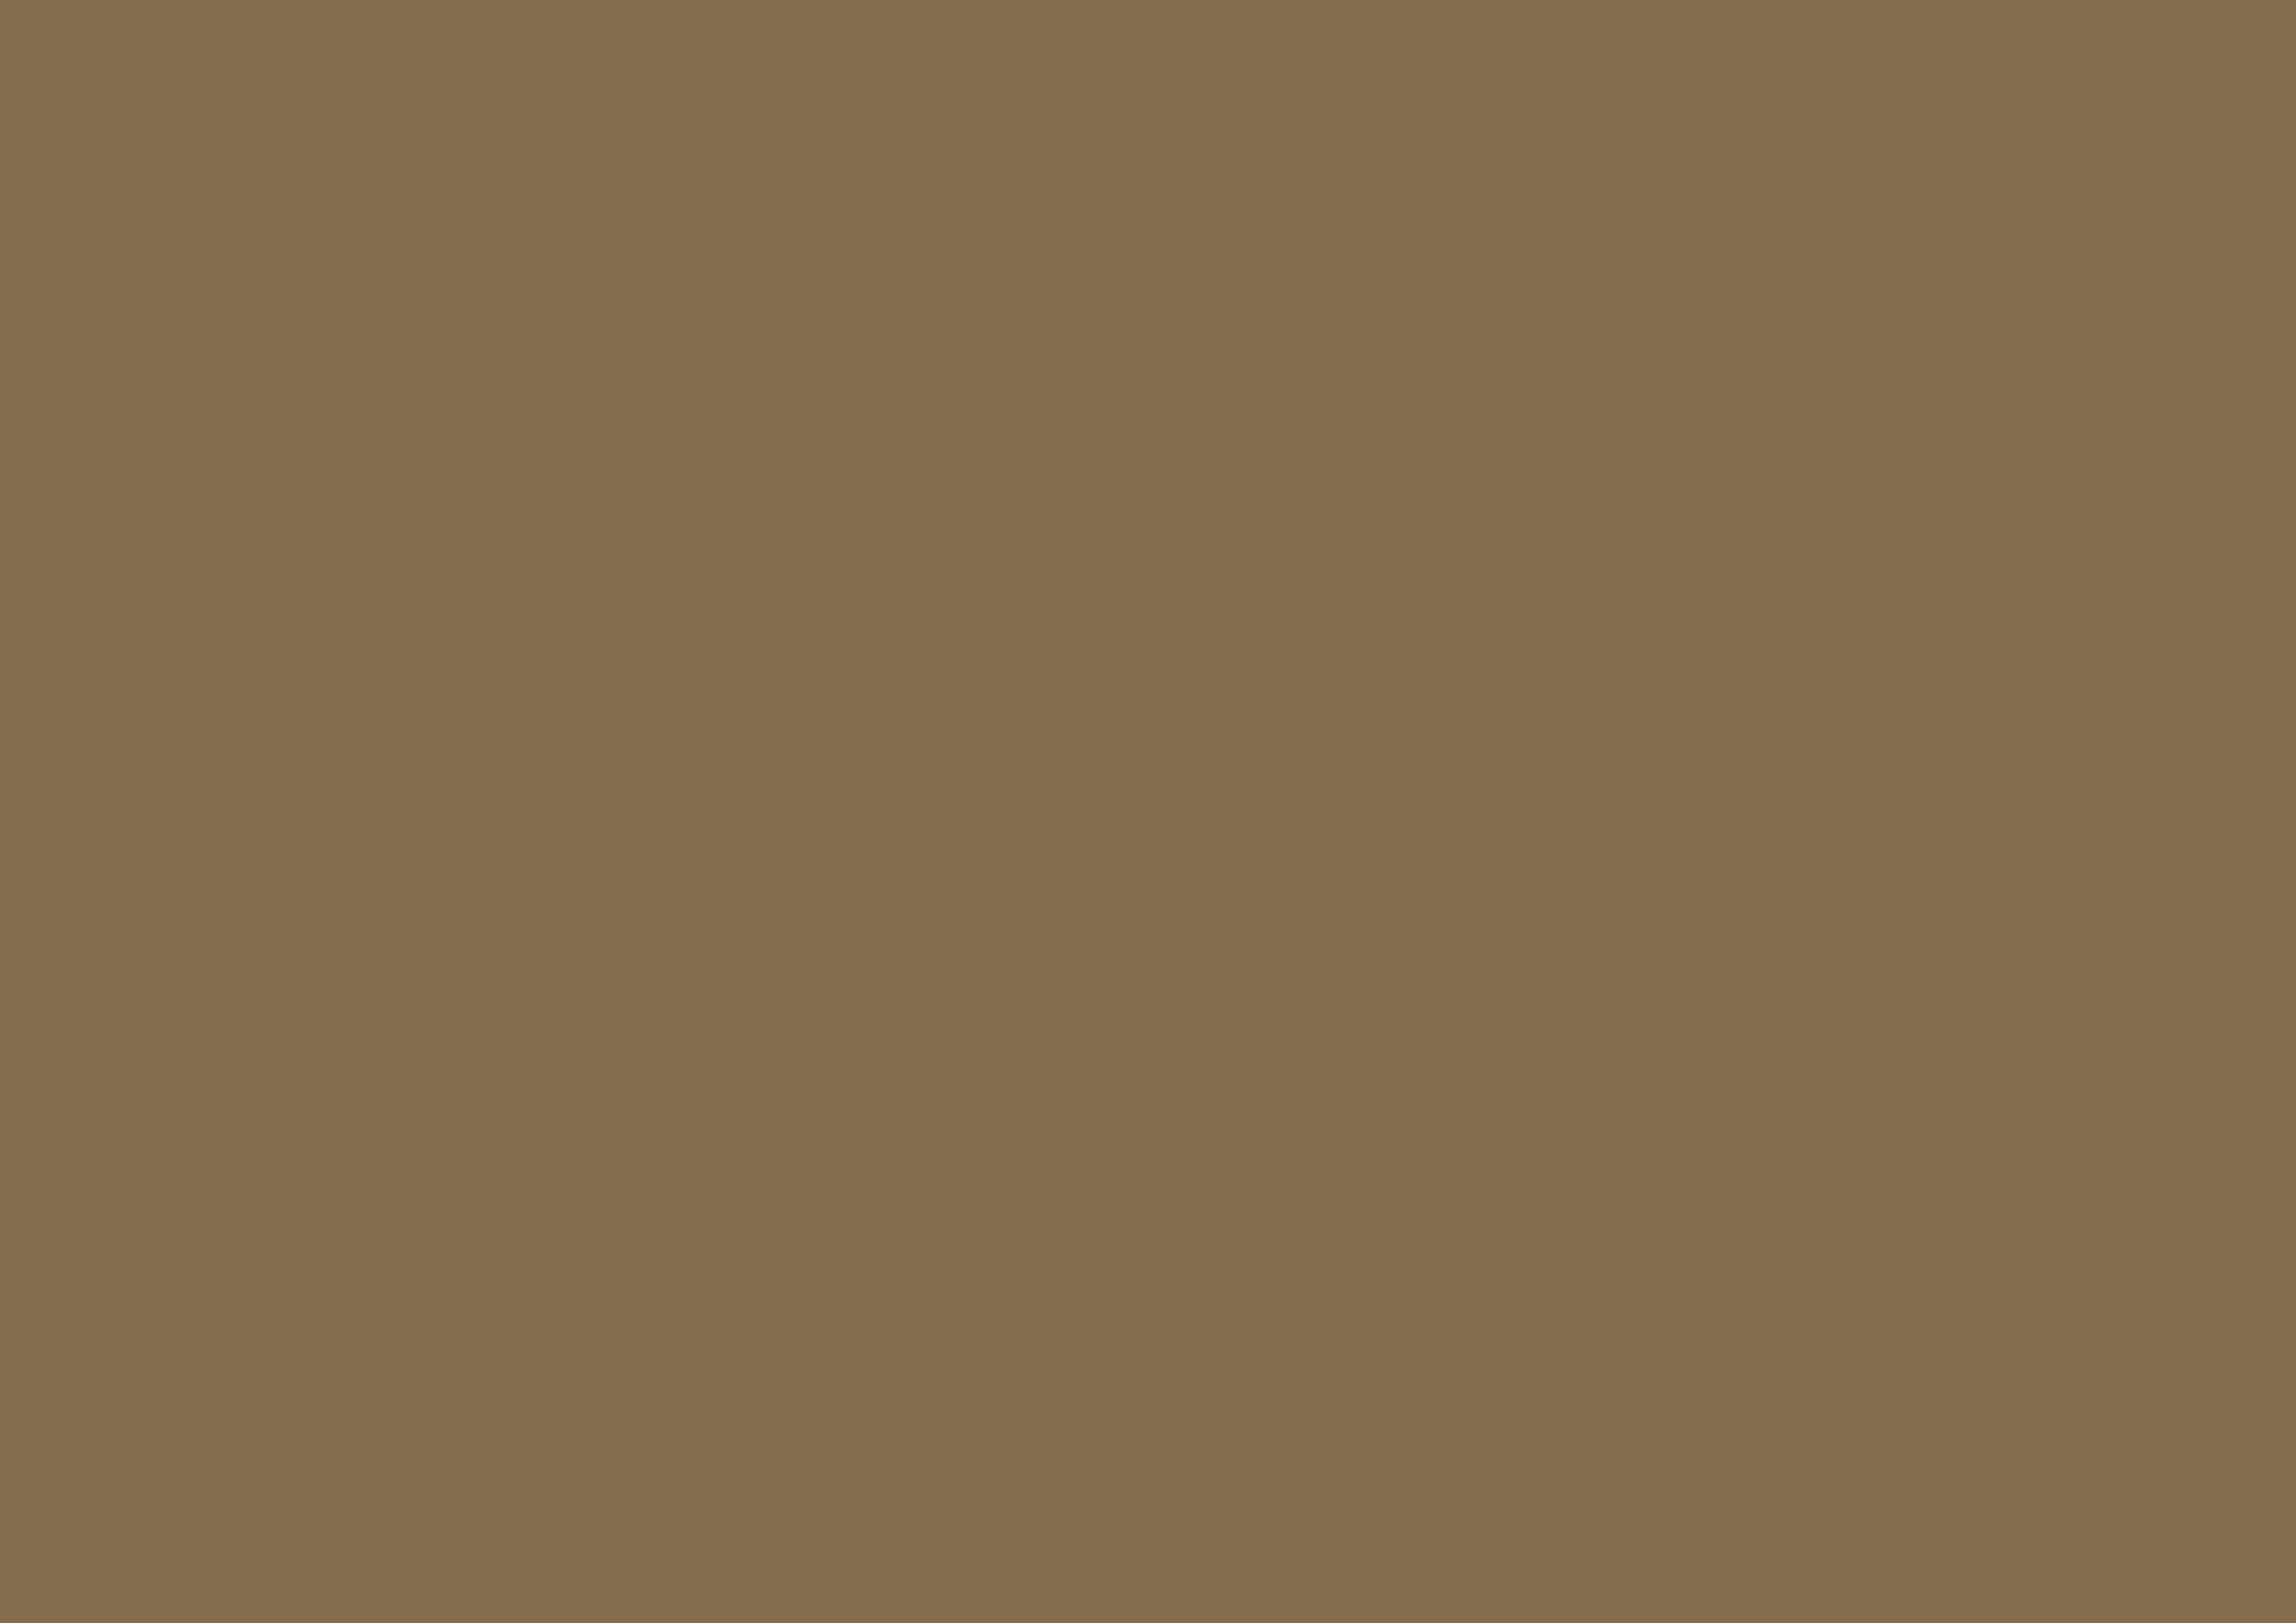 3508x2480 French Bistre Solid Color Background